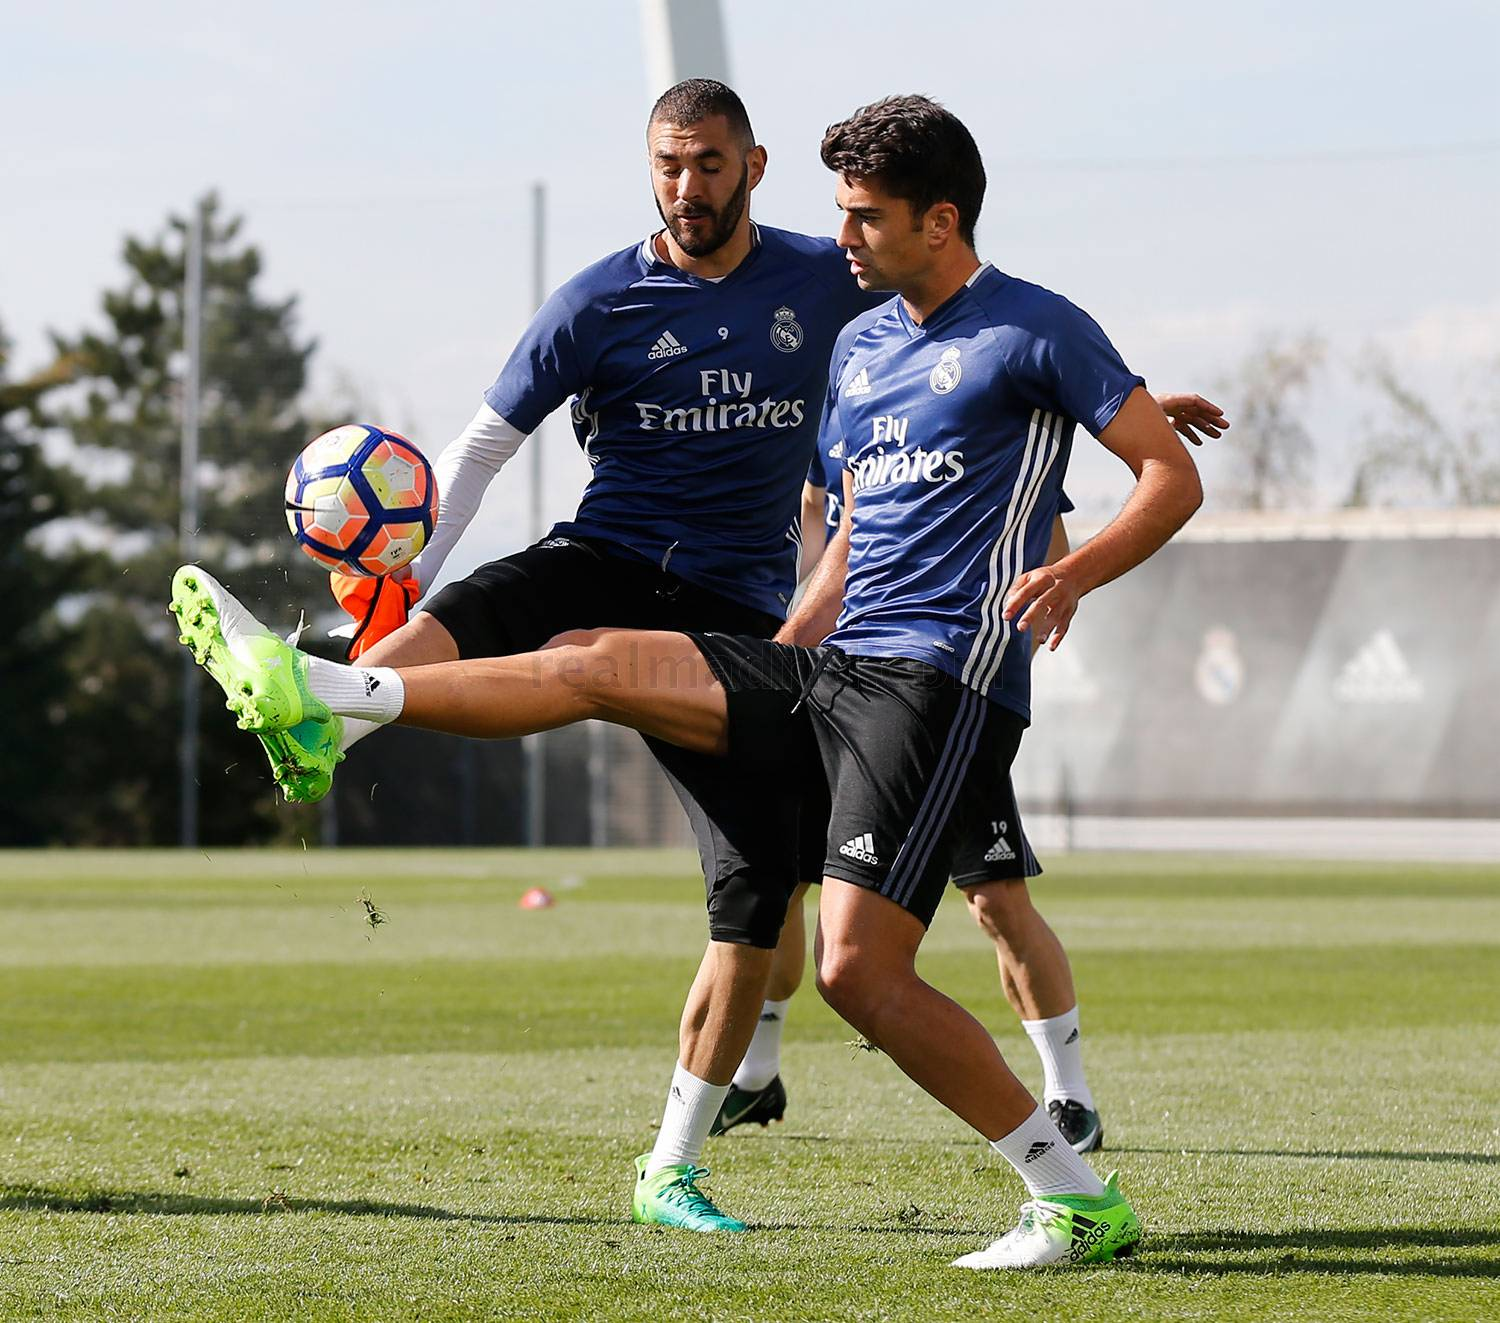 Real Madrid - Entrenamiento del Real Madrid - 29-03-2017